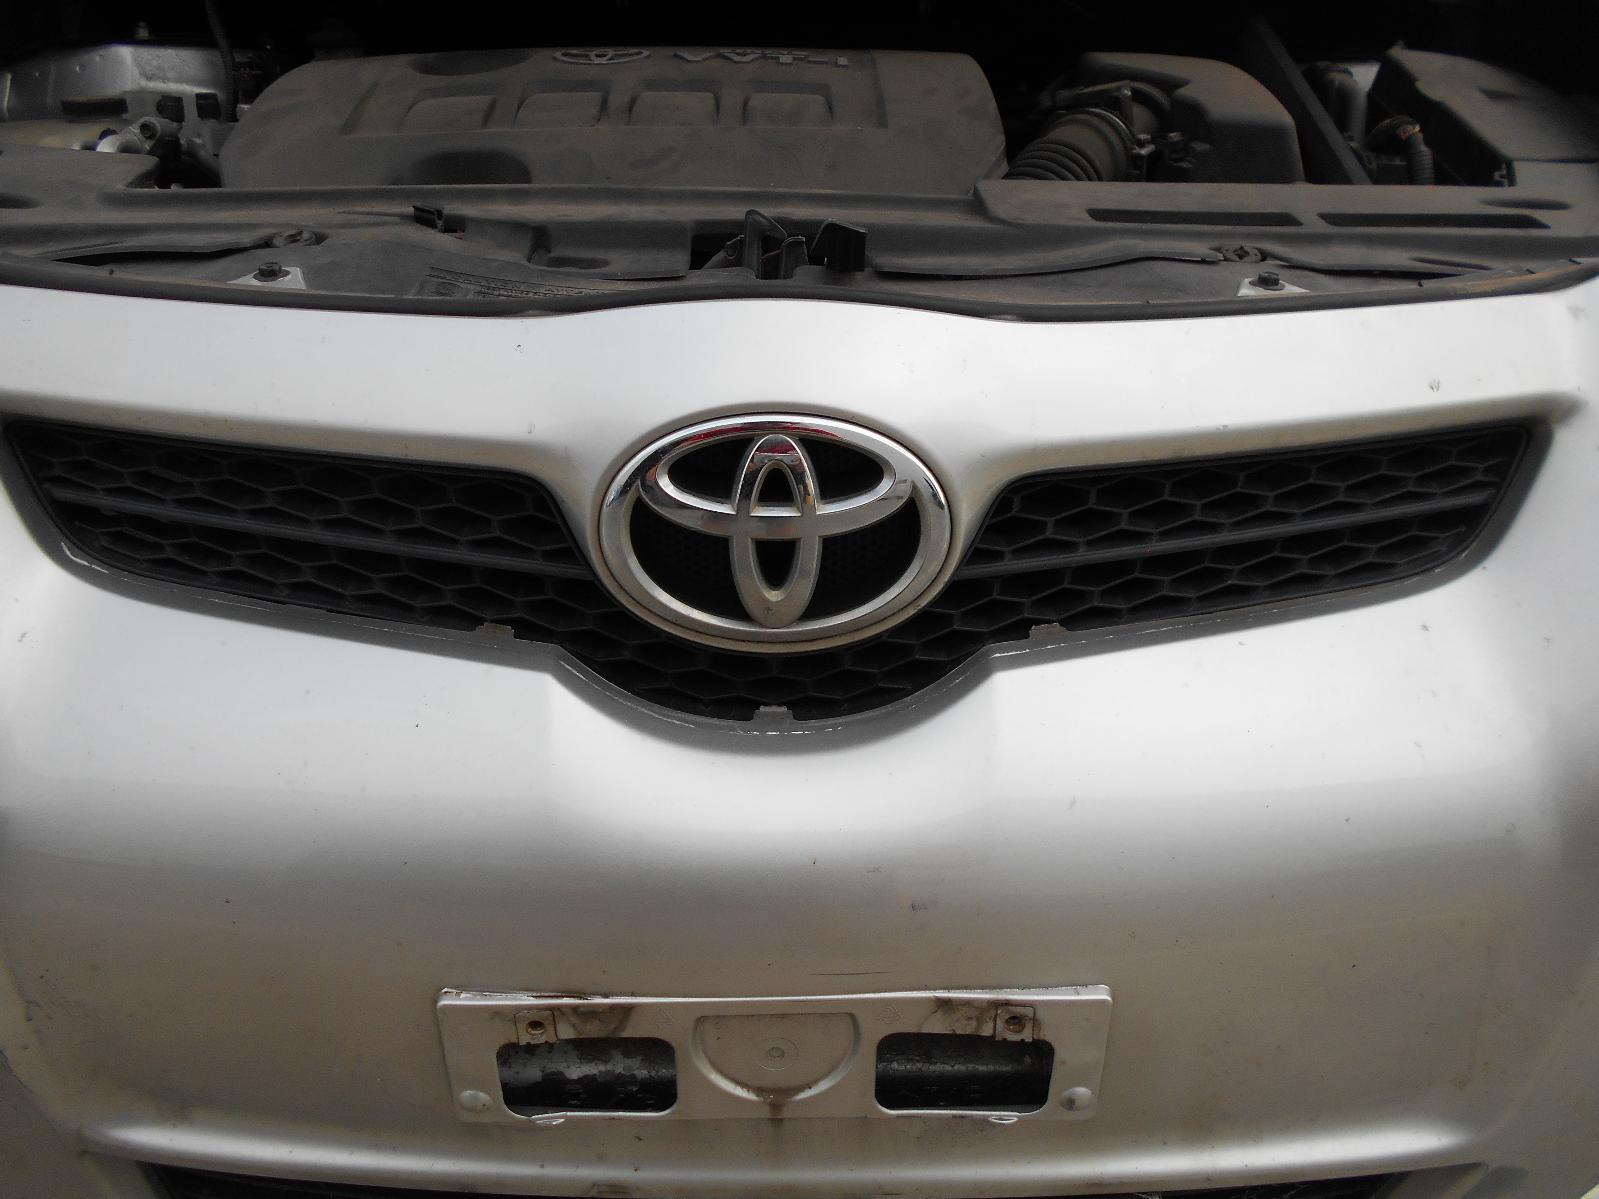 TOYOTA COROLLA, Grille, RADIATOR GRILLE, ZRE152R, HATCH, 03/07-10/09